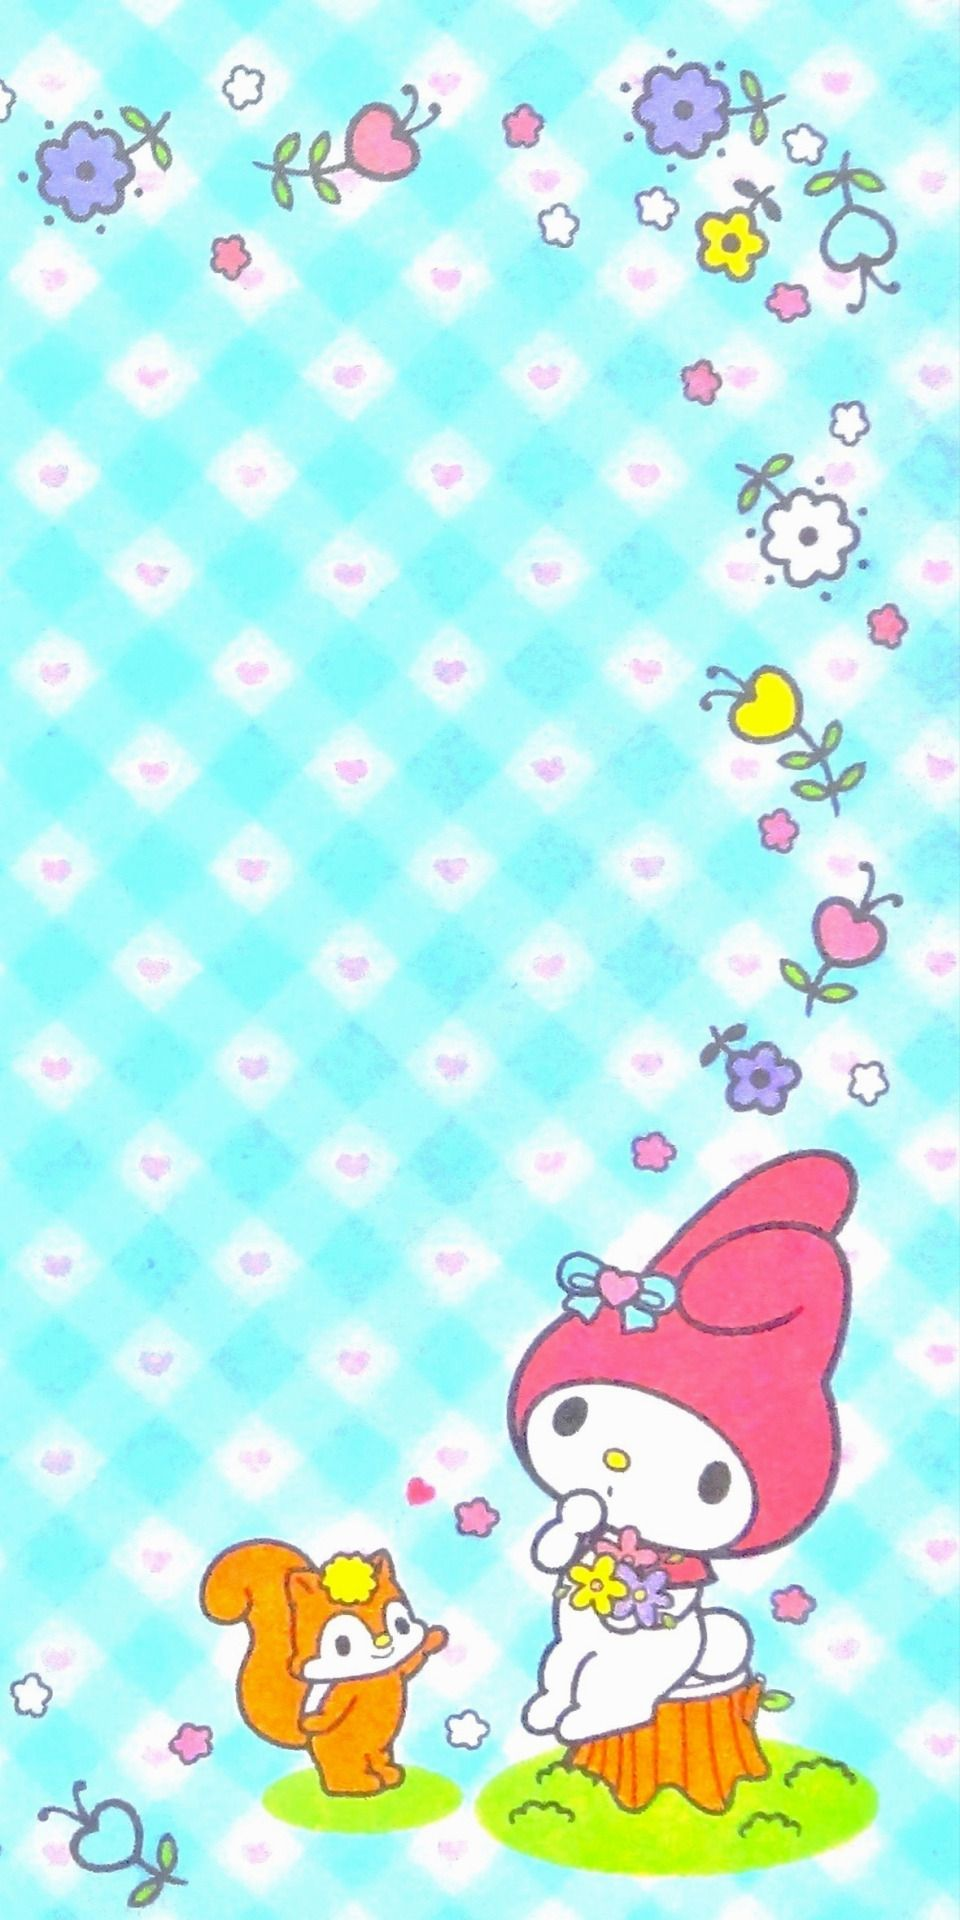 Cute Images Hello Kitty WallpaperSanrio WallpaperMy Melody